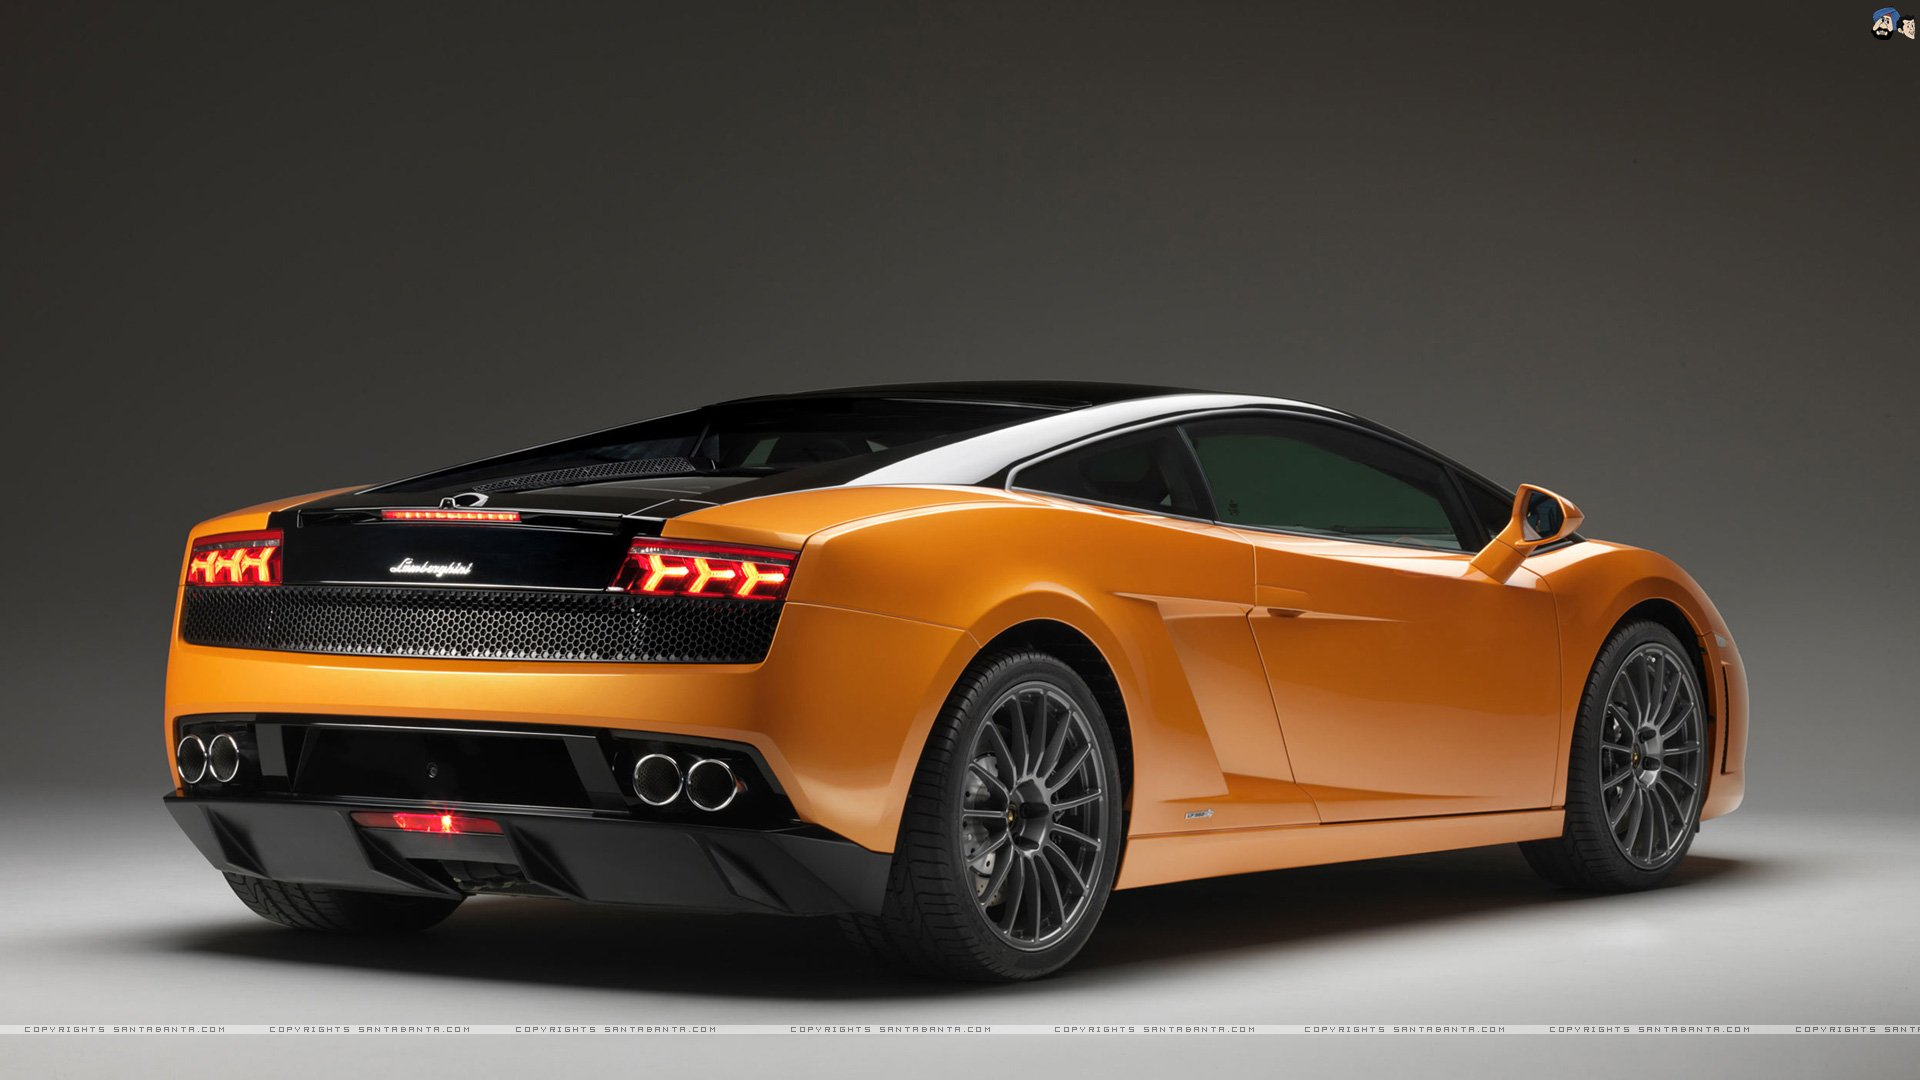 Lamborghini Gallardo HD Wallpaper